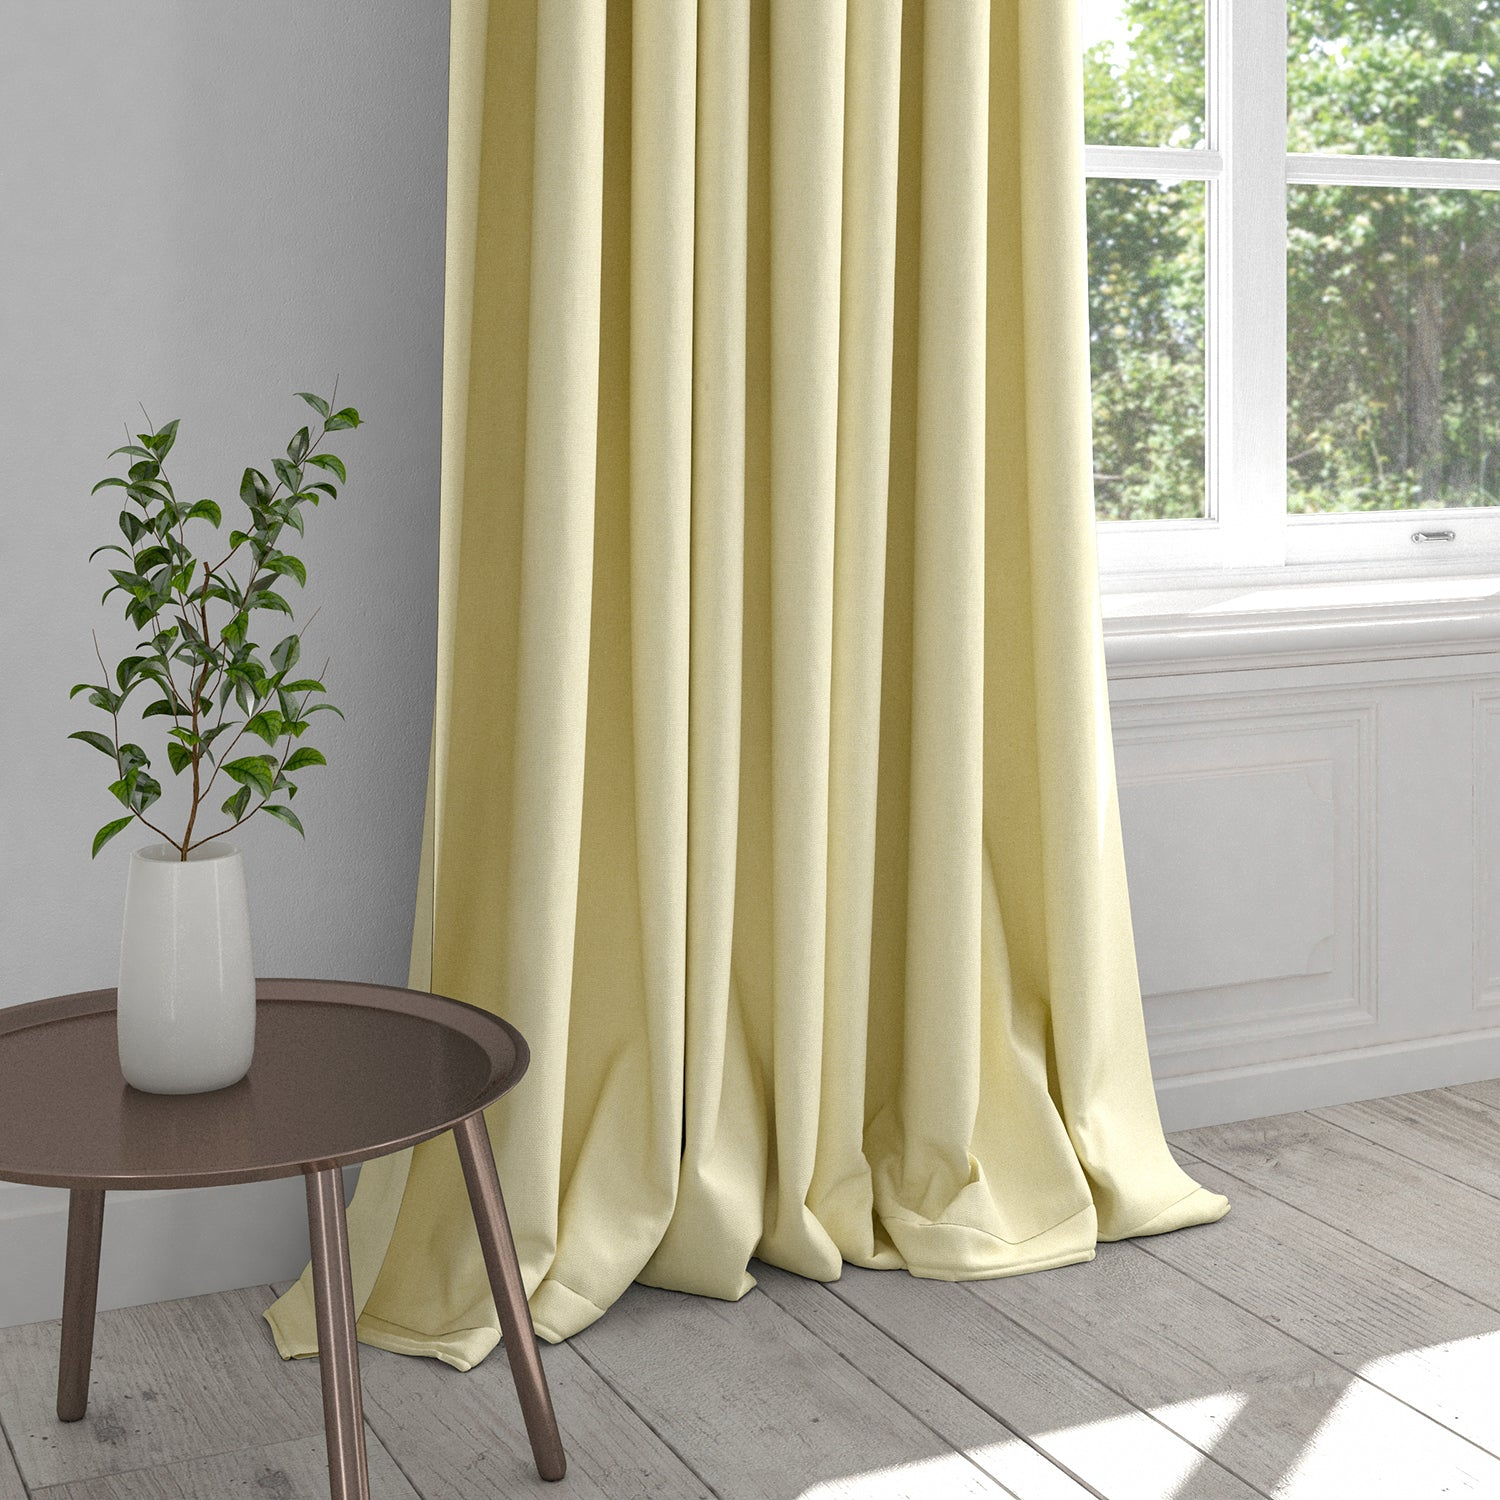 Curtain in a off-white plain cotton furnishing fabric